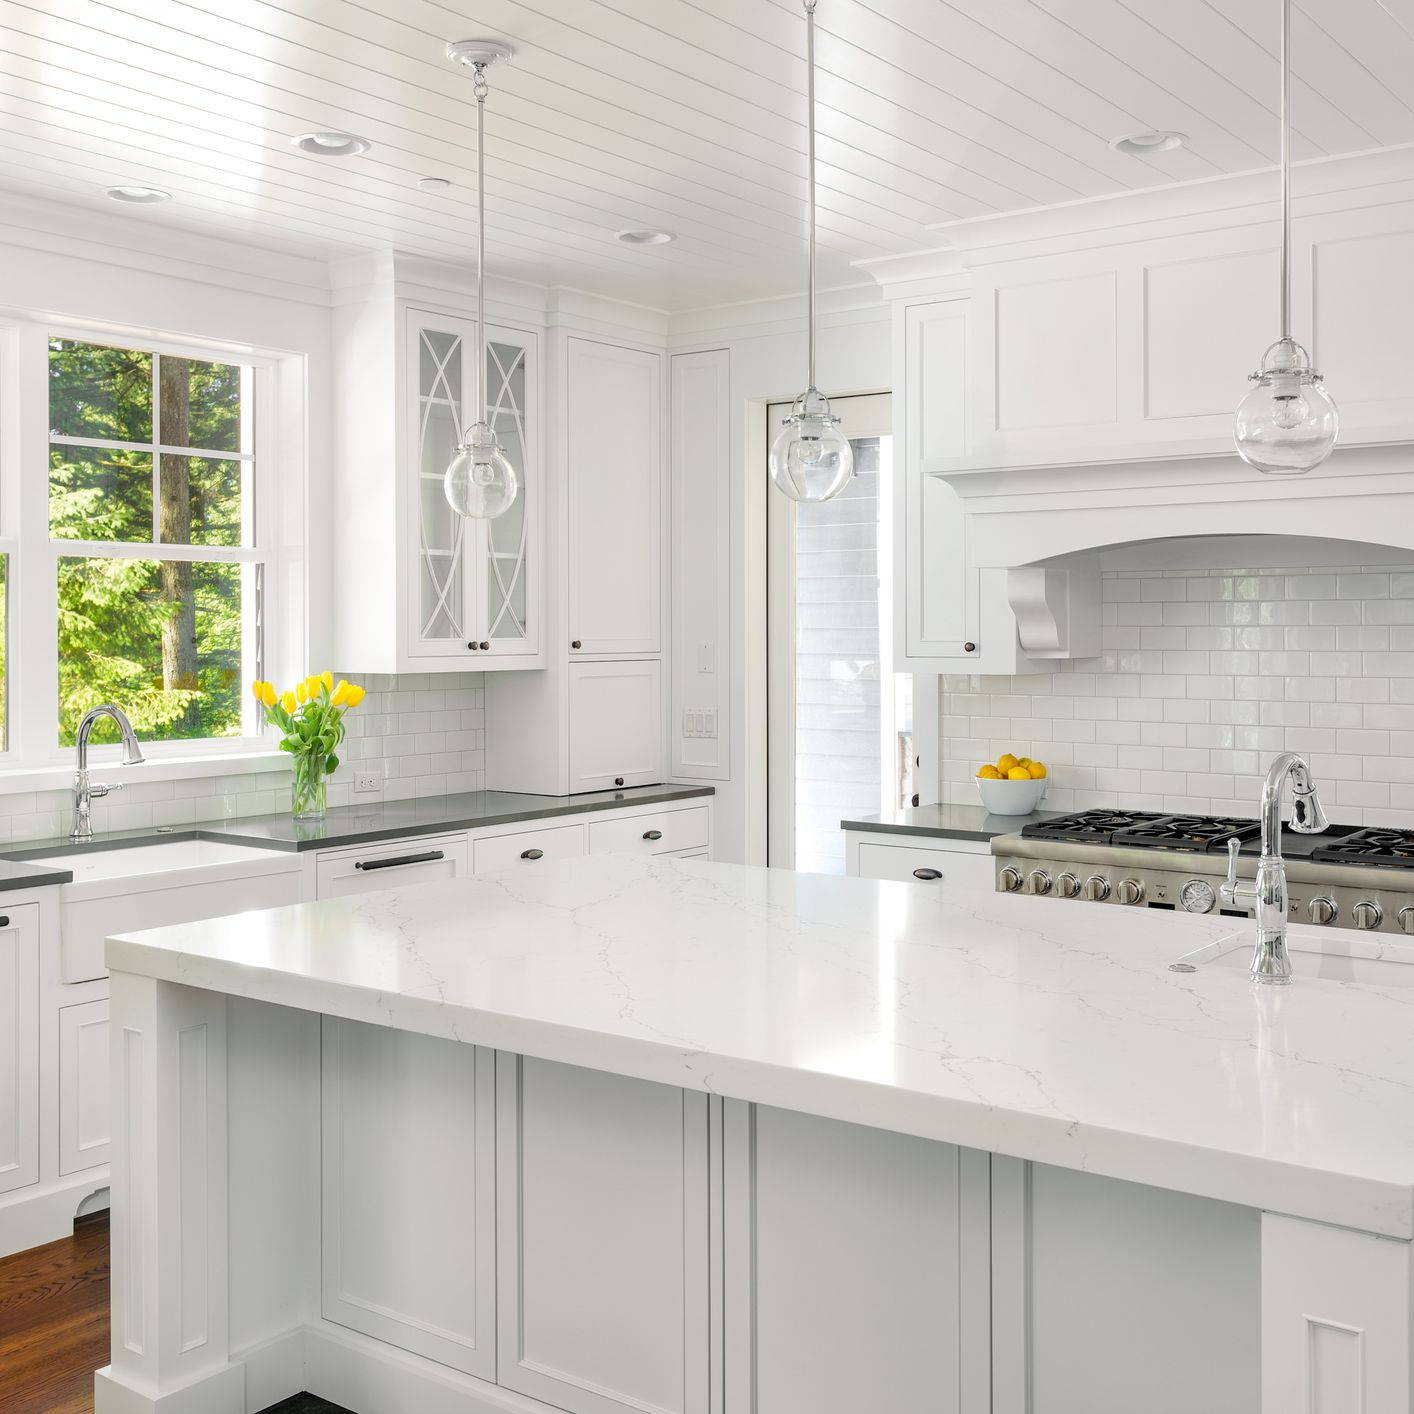 Things To Consider Before Buying New Cabinets